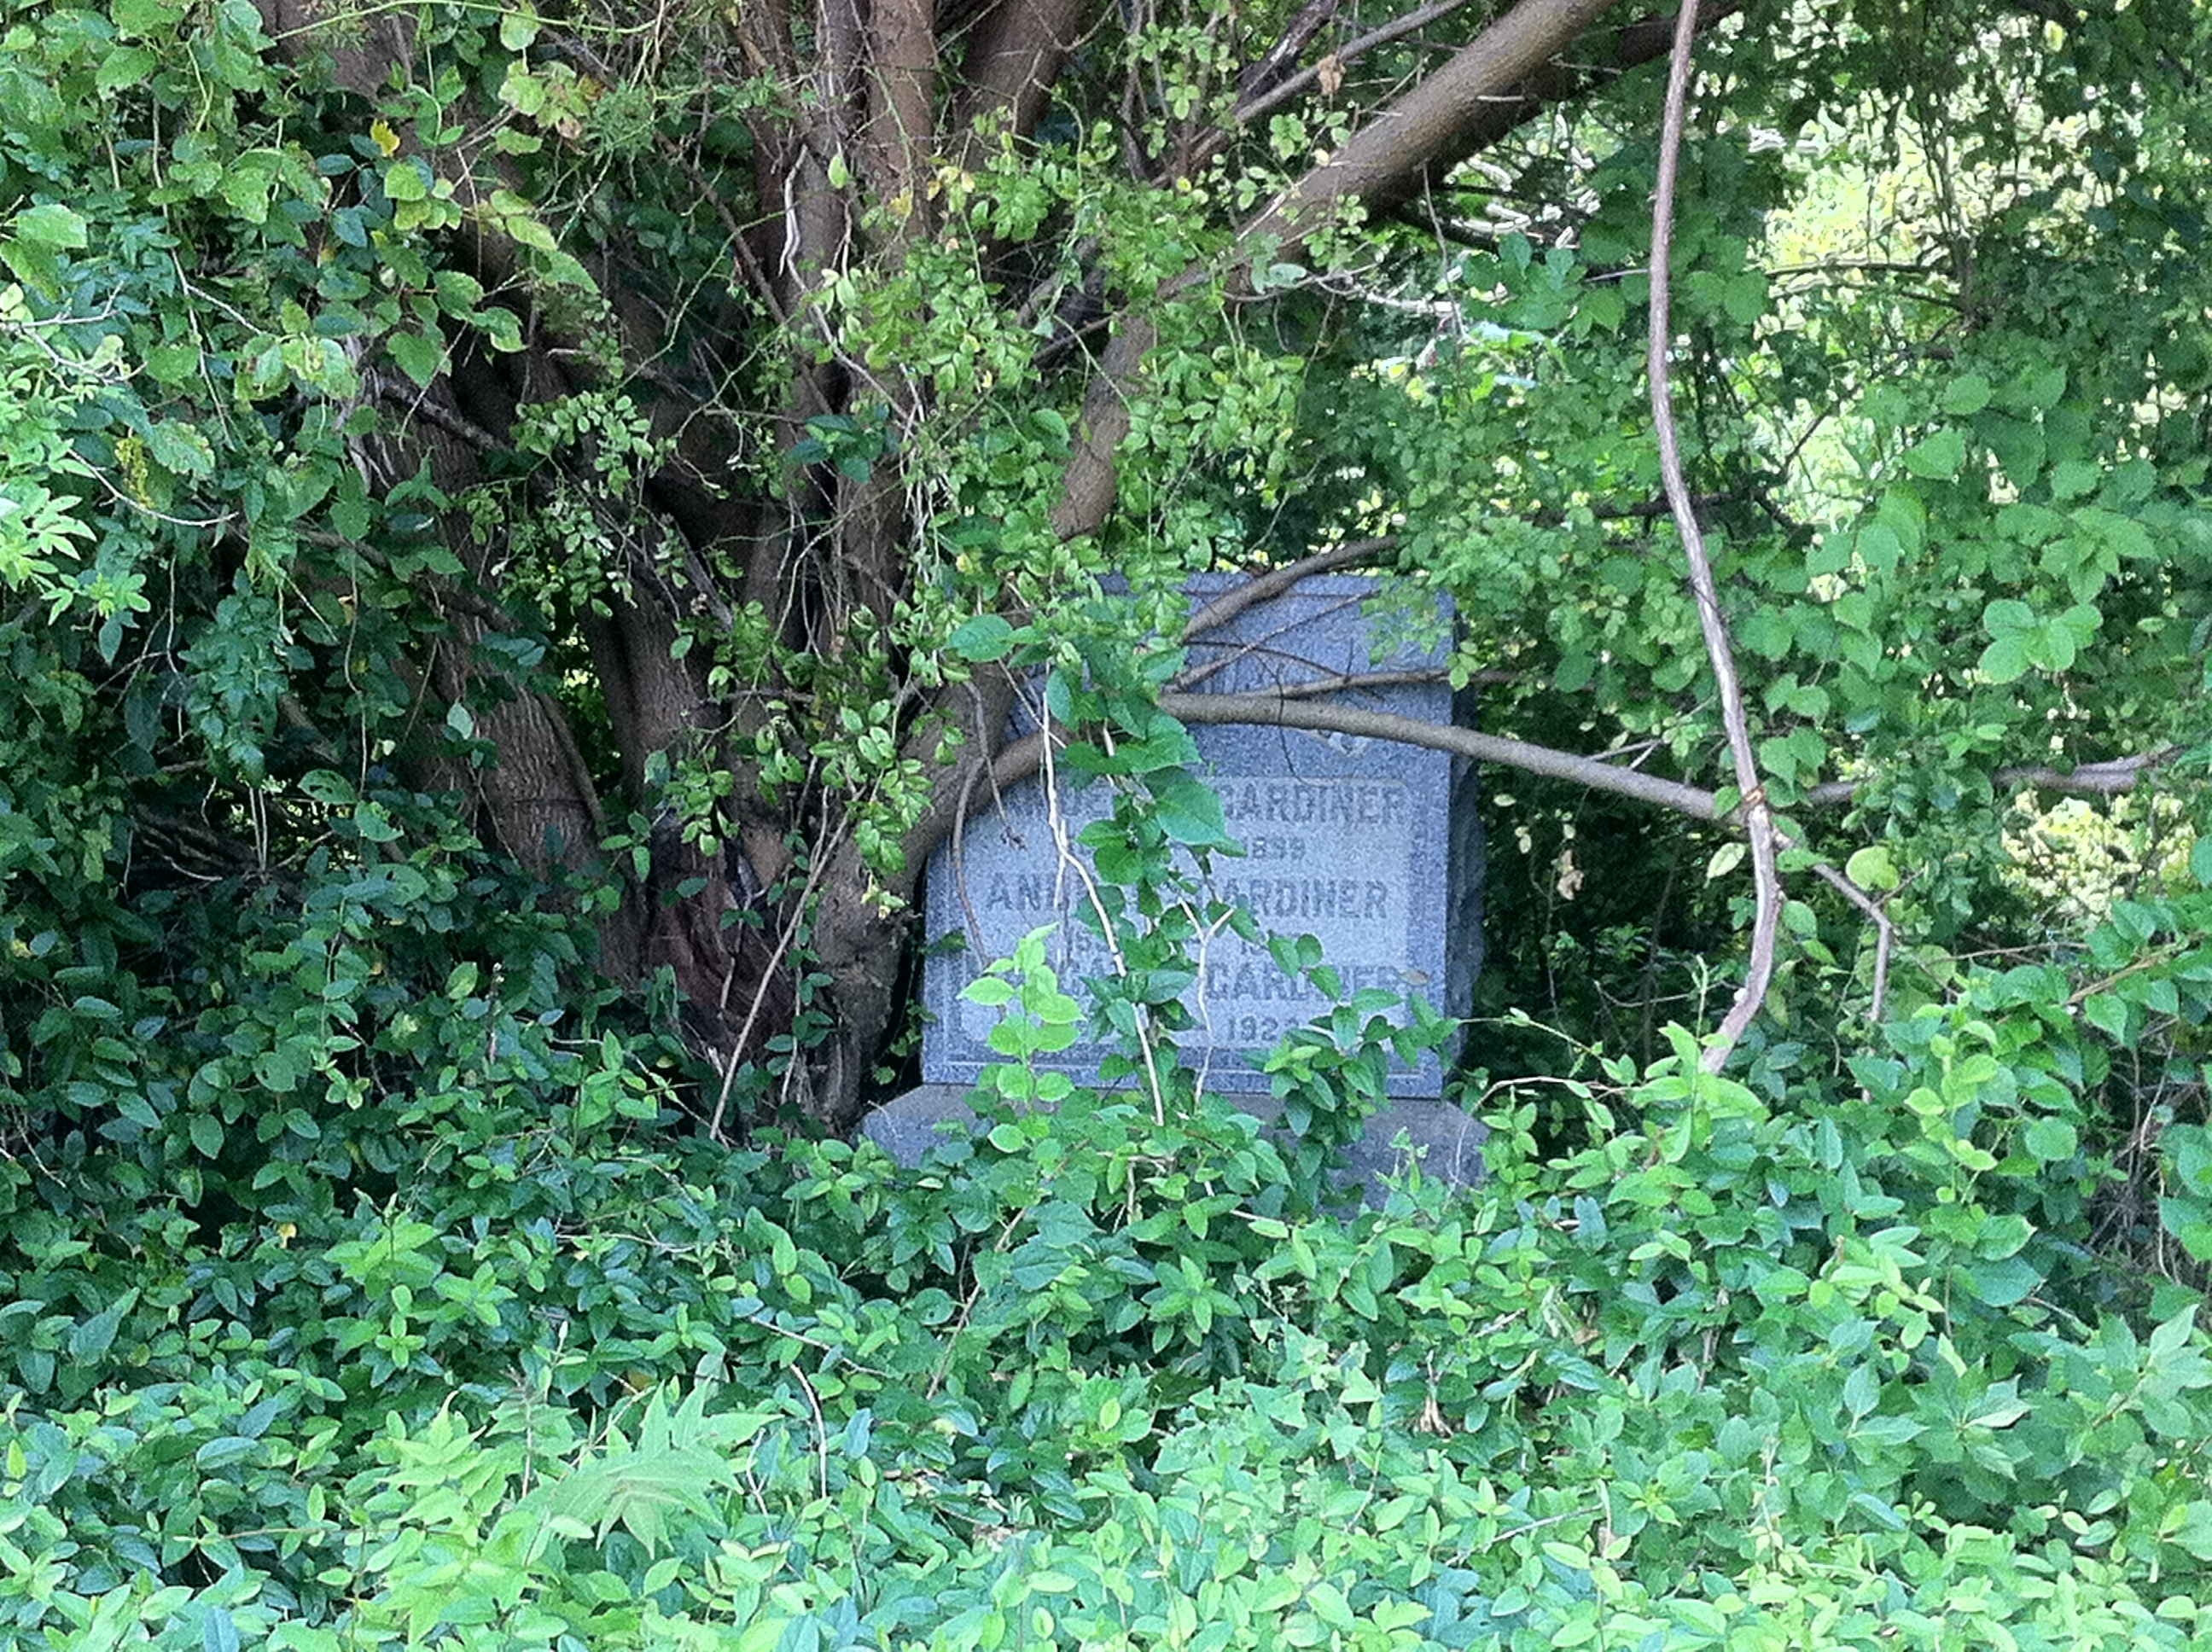 Holding out hope for Mount Moriah Cemetery